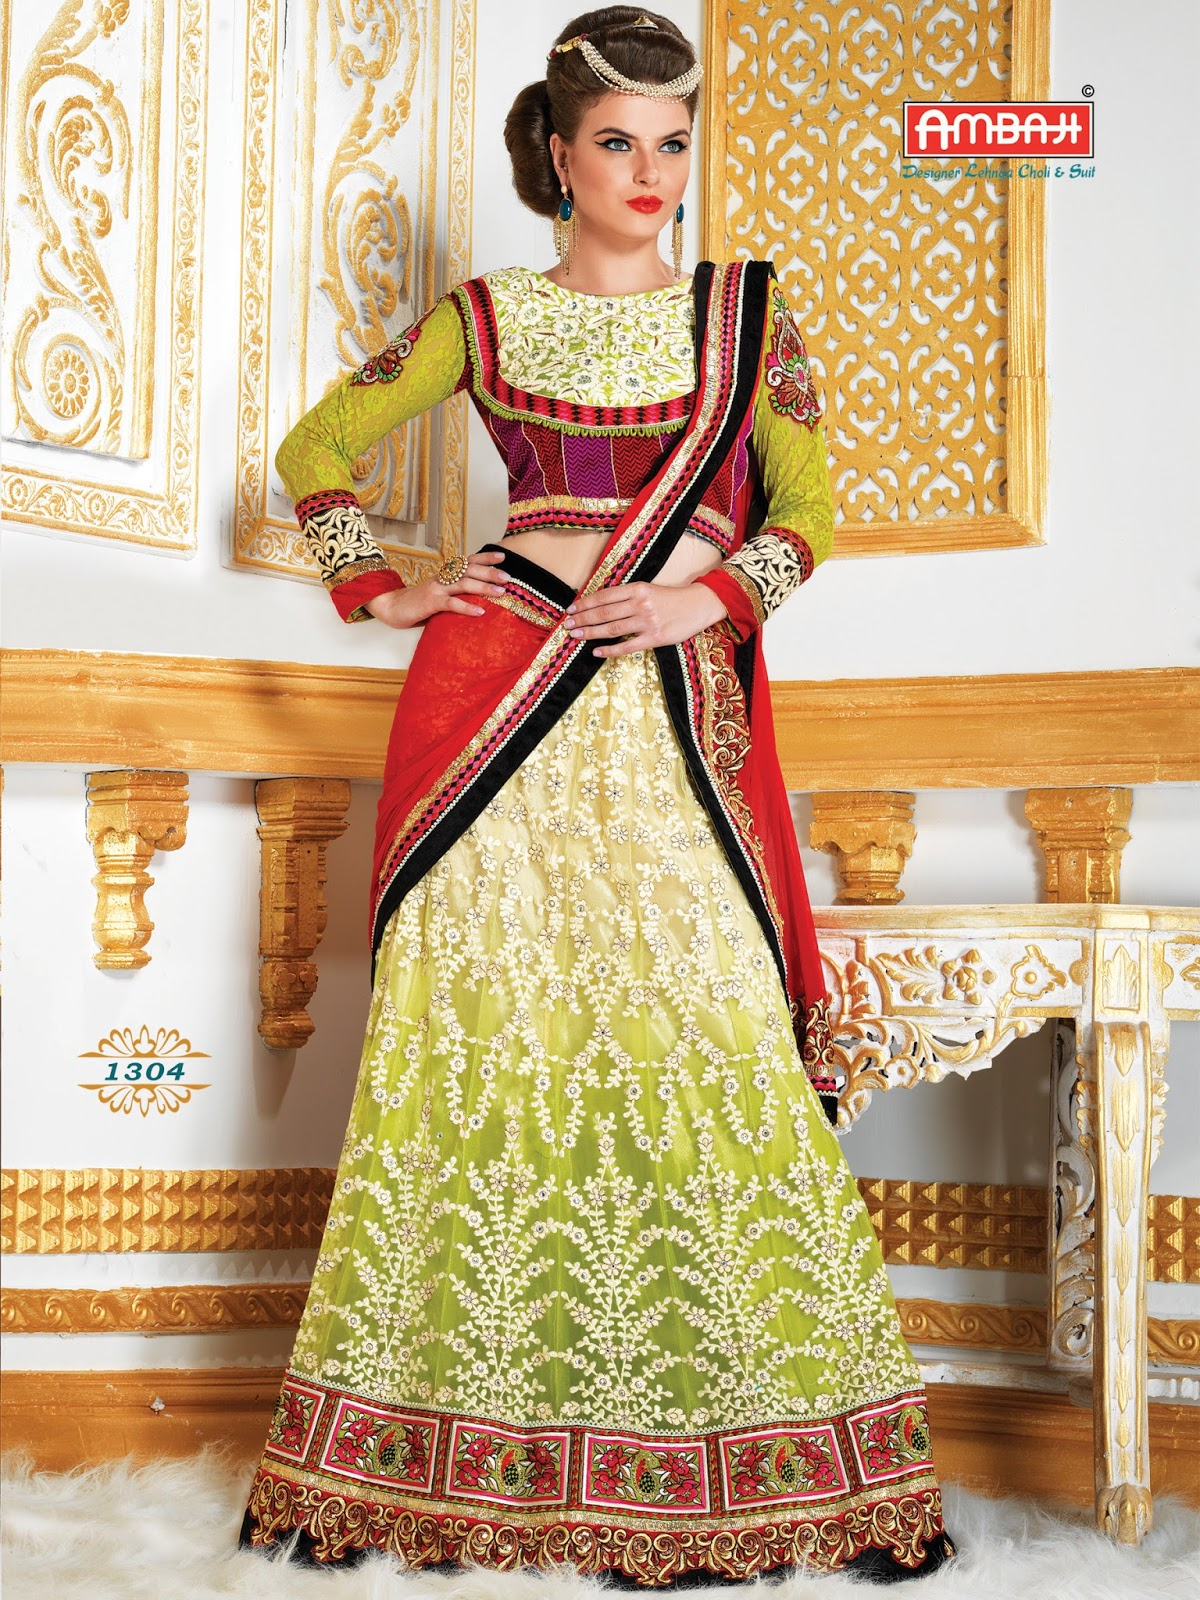 Ambaji 1300 Series – New Collection Of Heavy Lehenga Choli